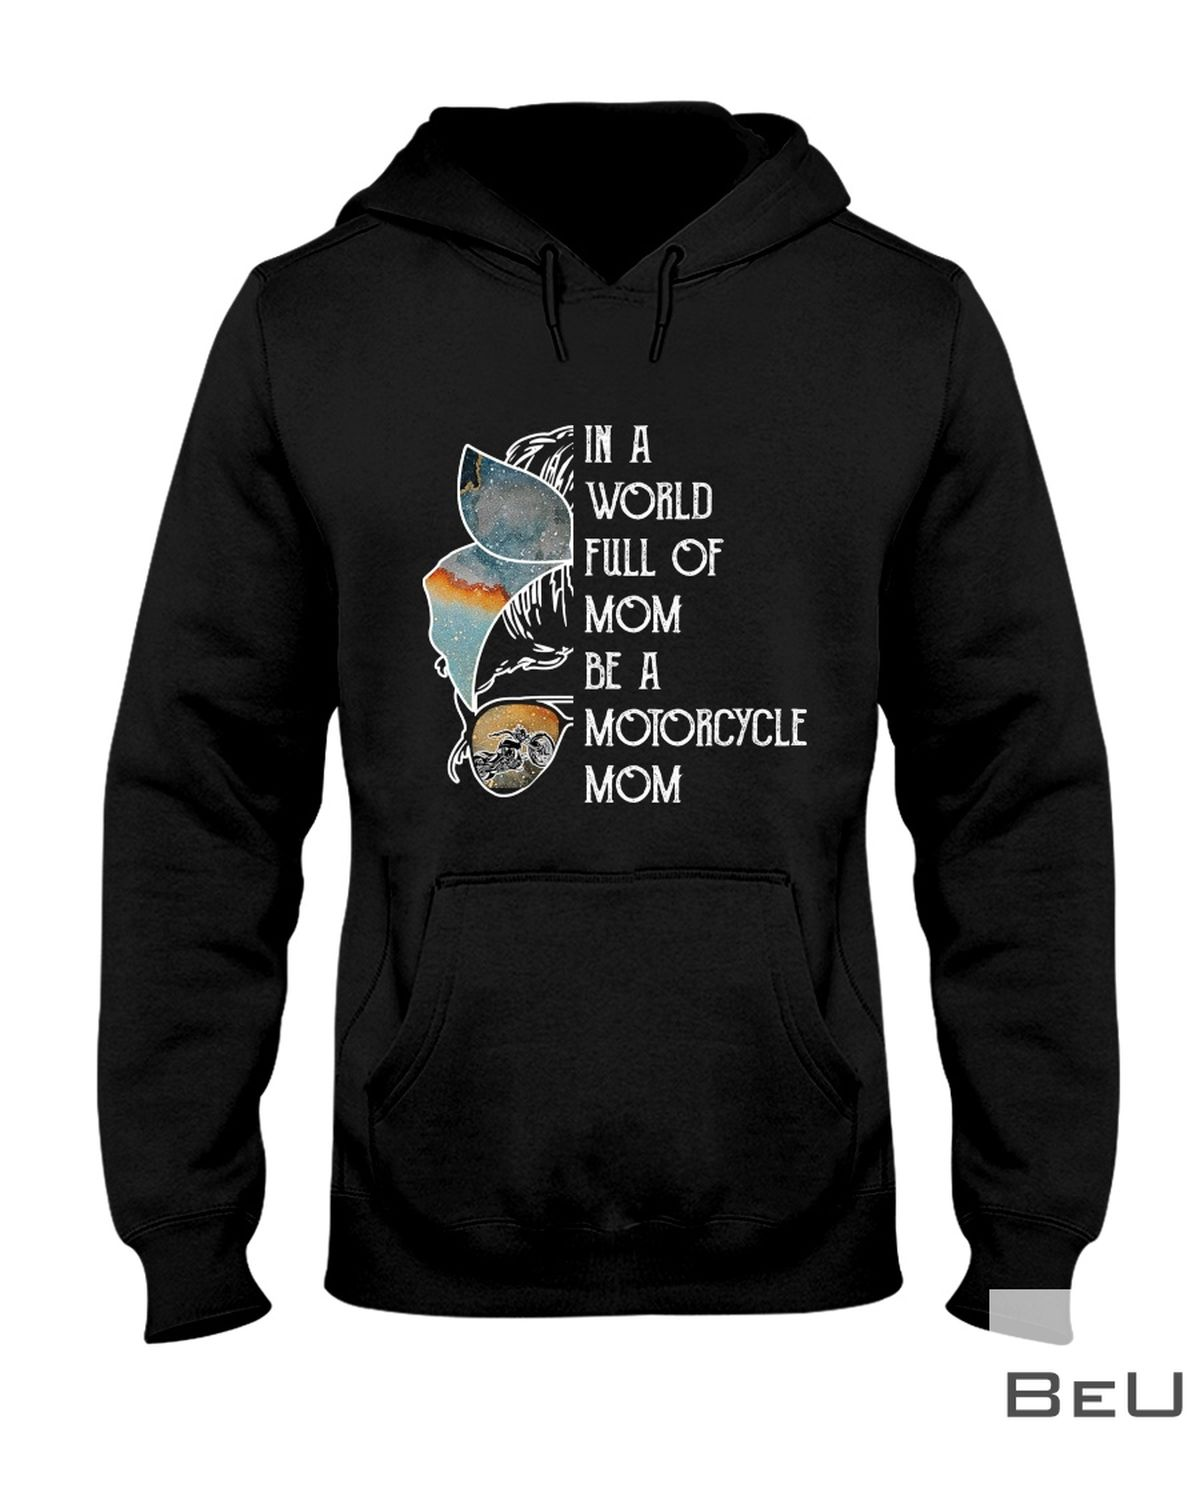 In A World Full Of Mom Be A Motorycle Mom Shirtx